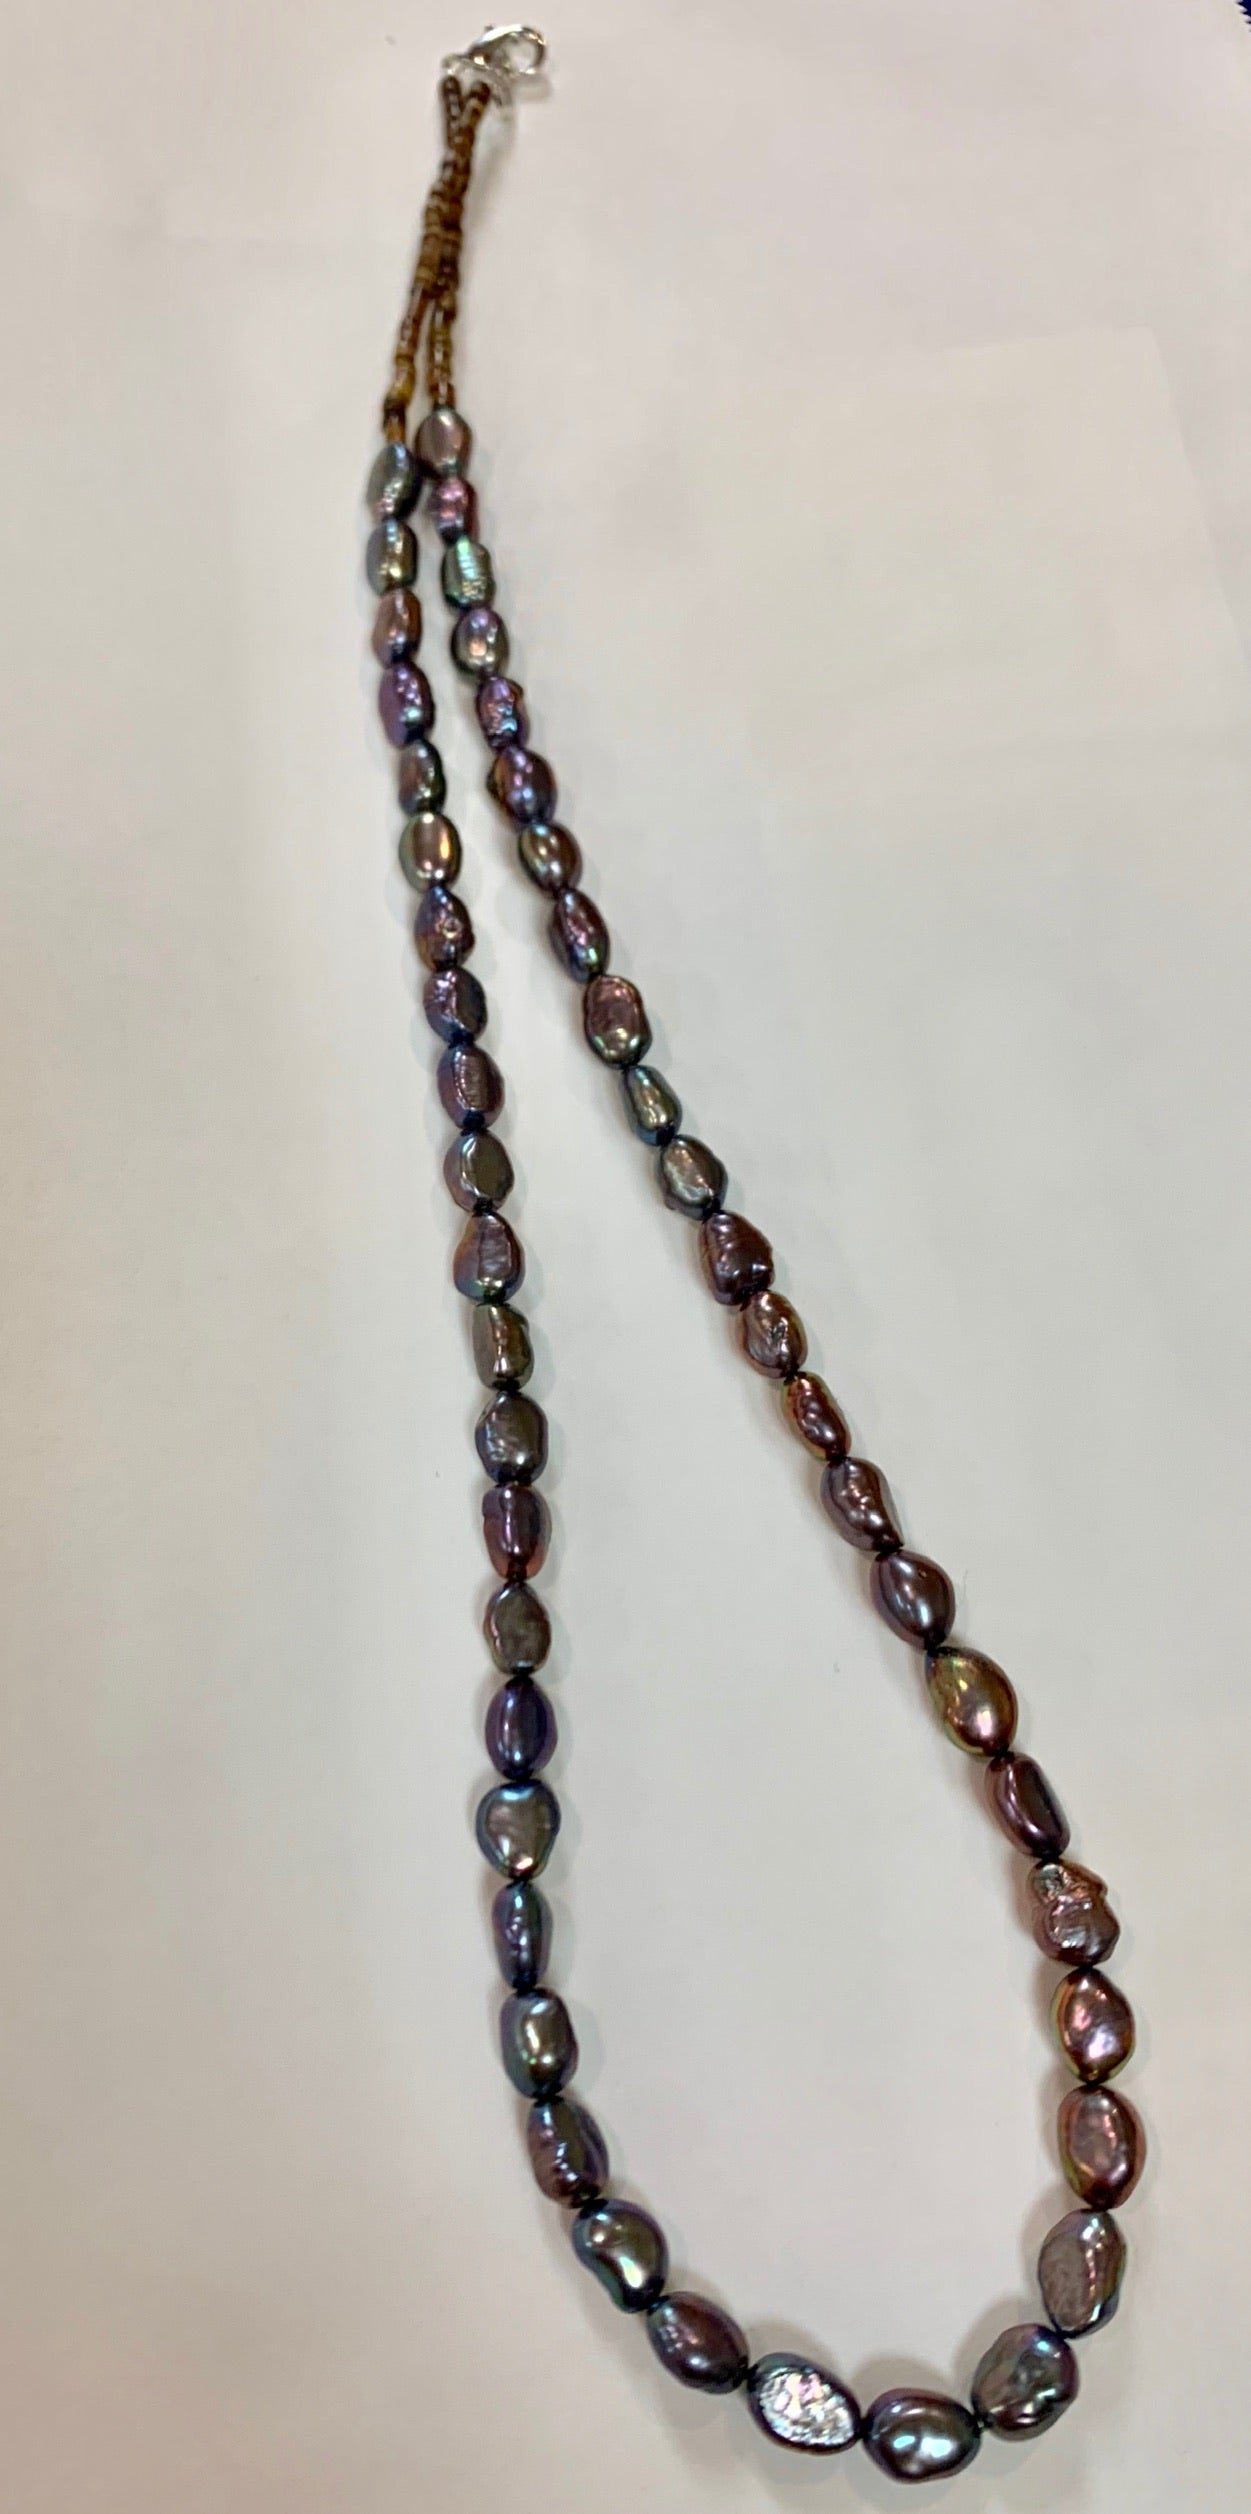 "Peacock Pearl Beaded 21"" Necklace"